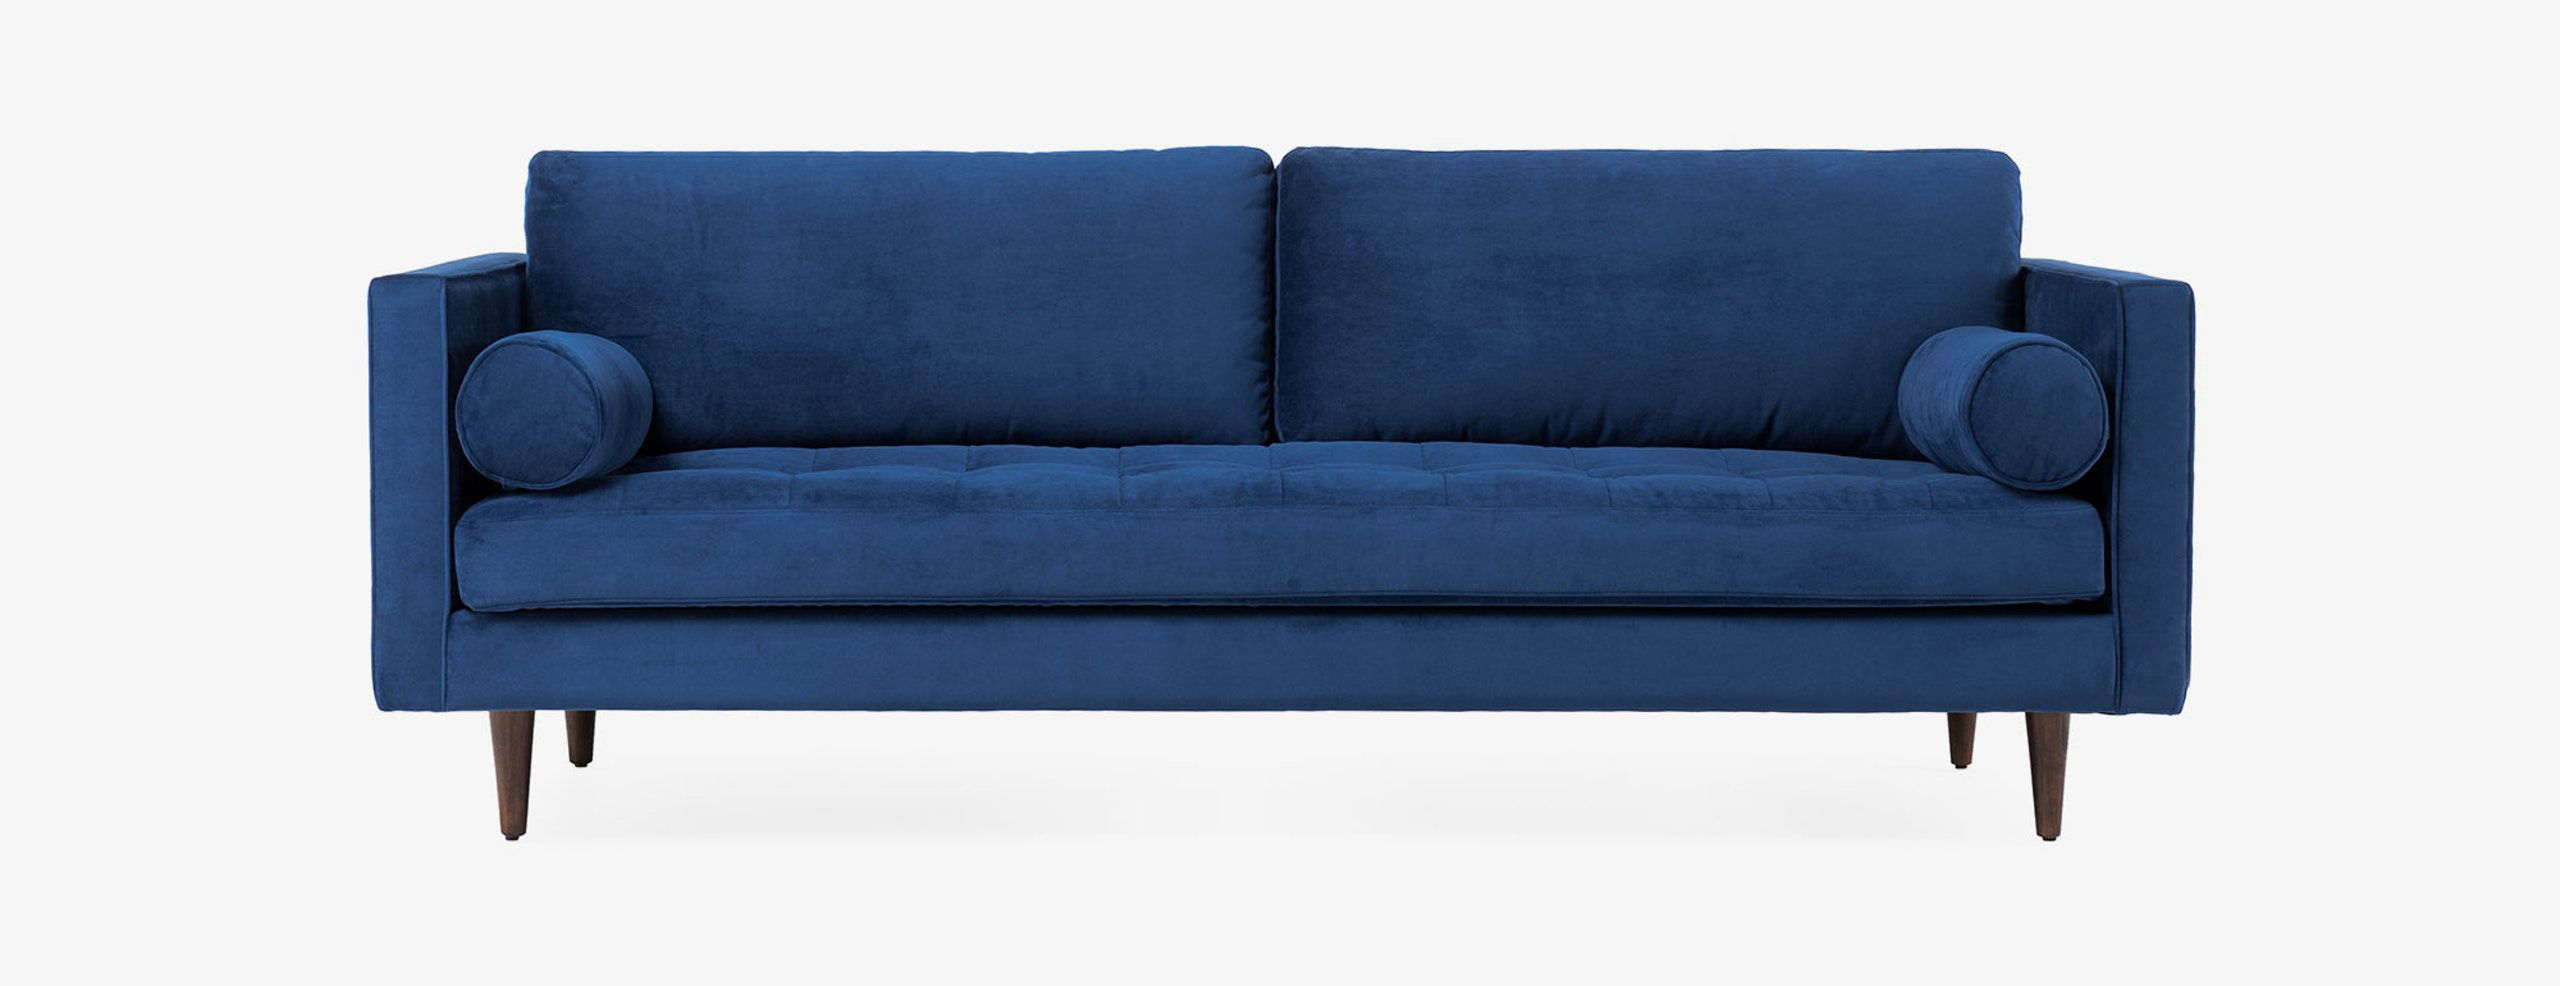 Briar sofa by Joybird in Royale Cobalt and Mocha